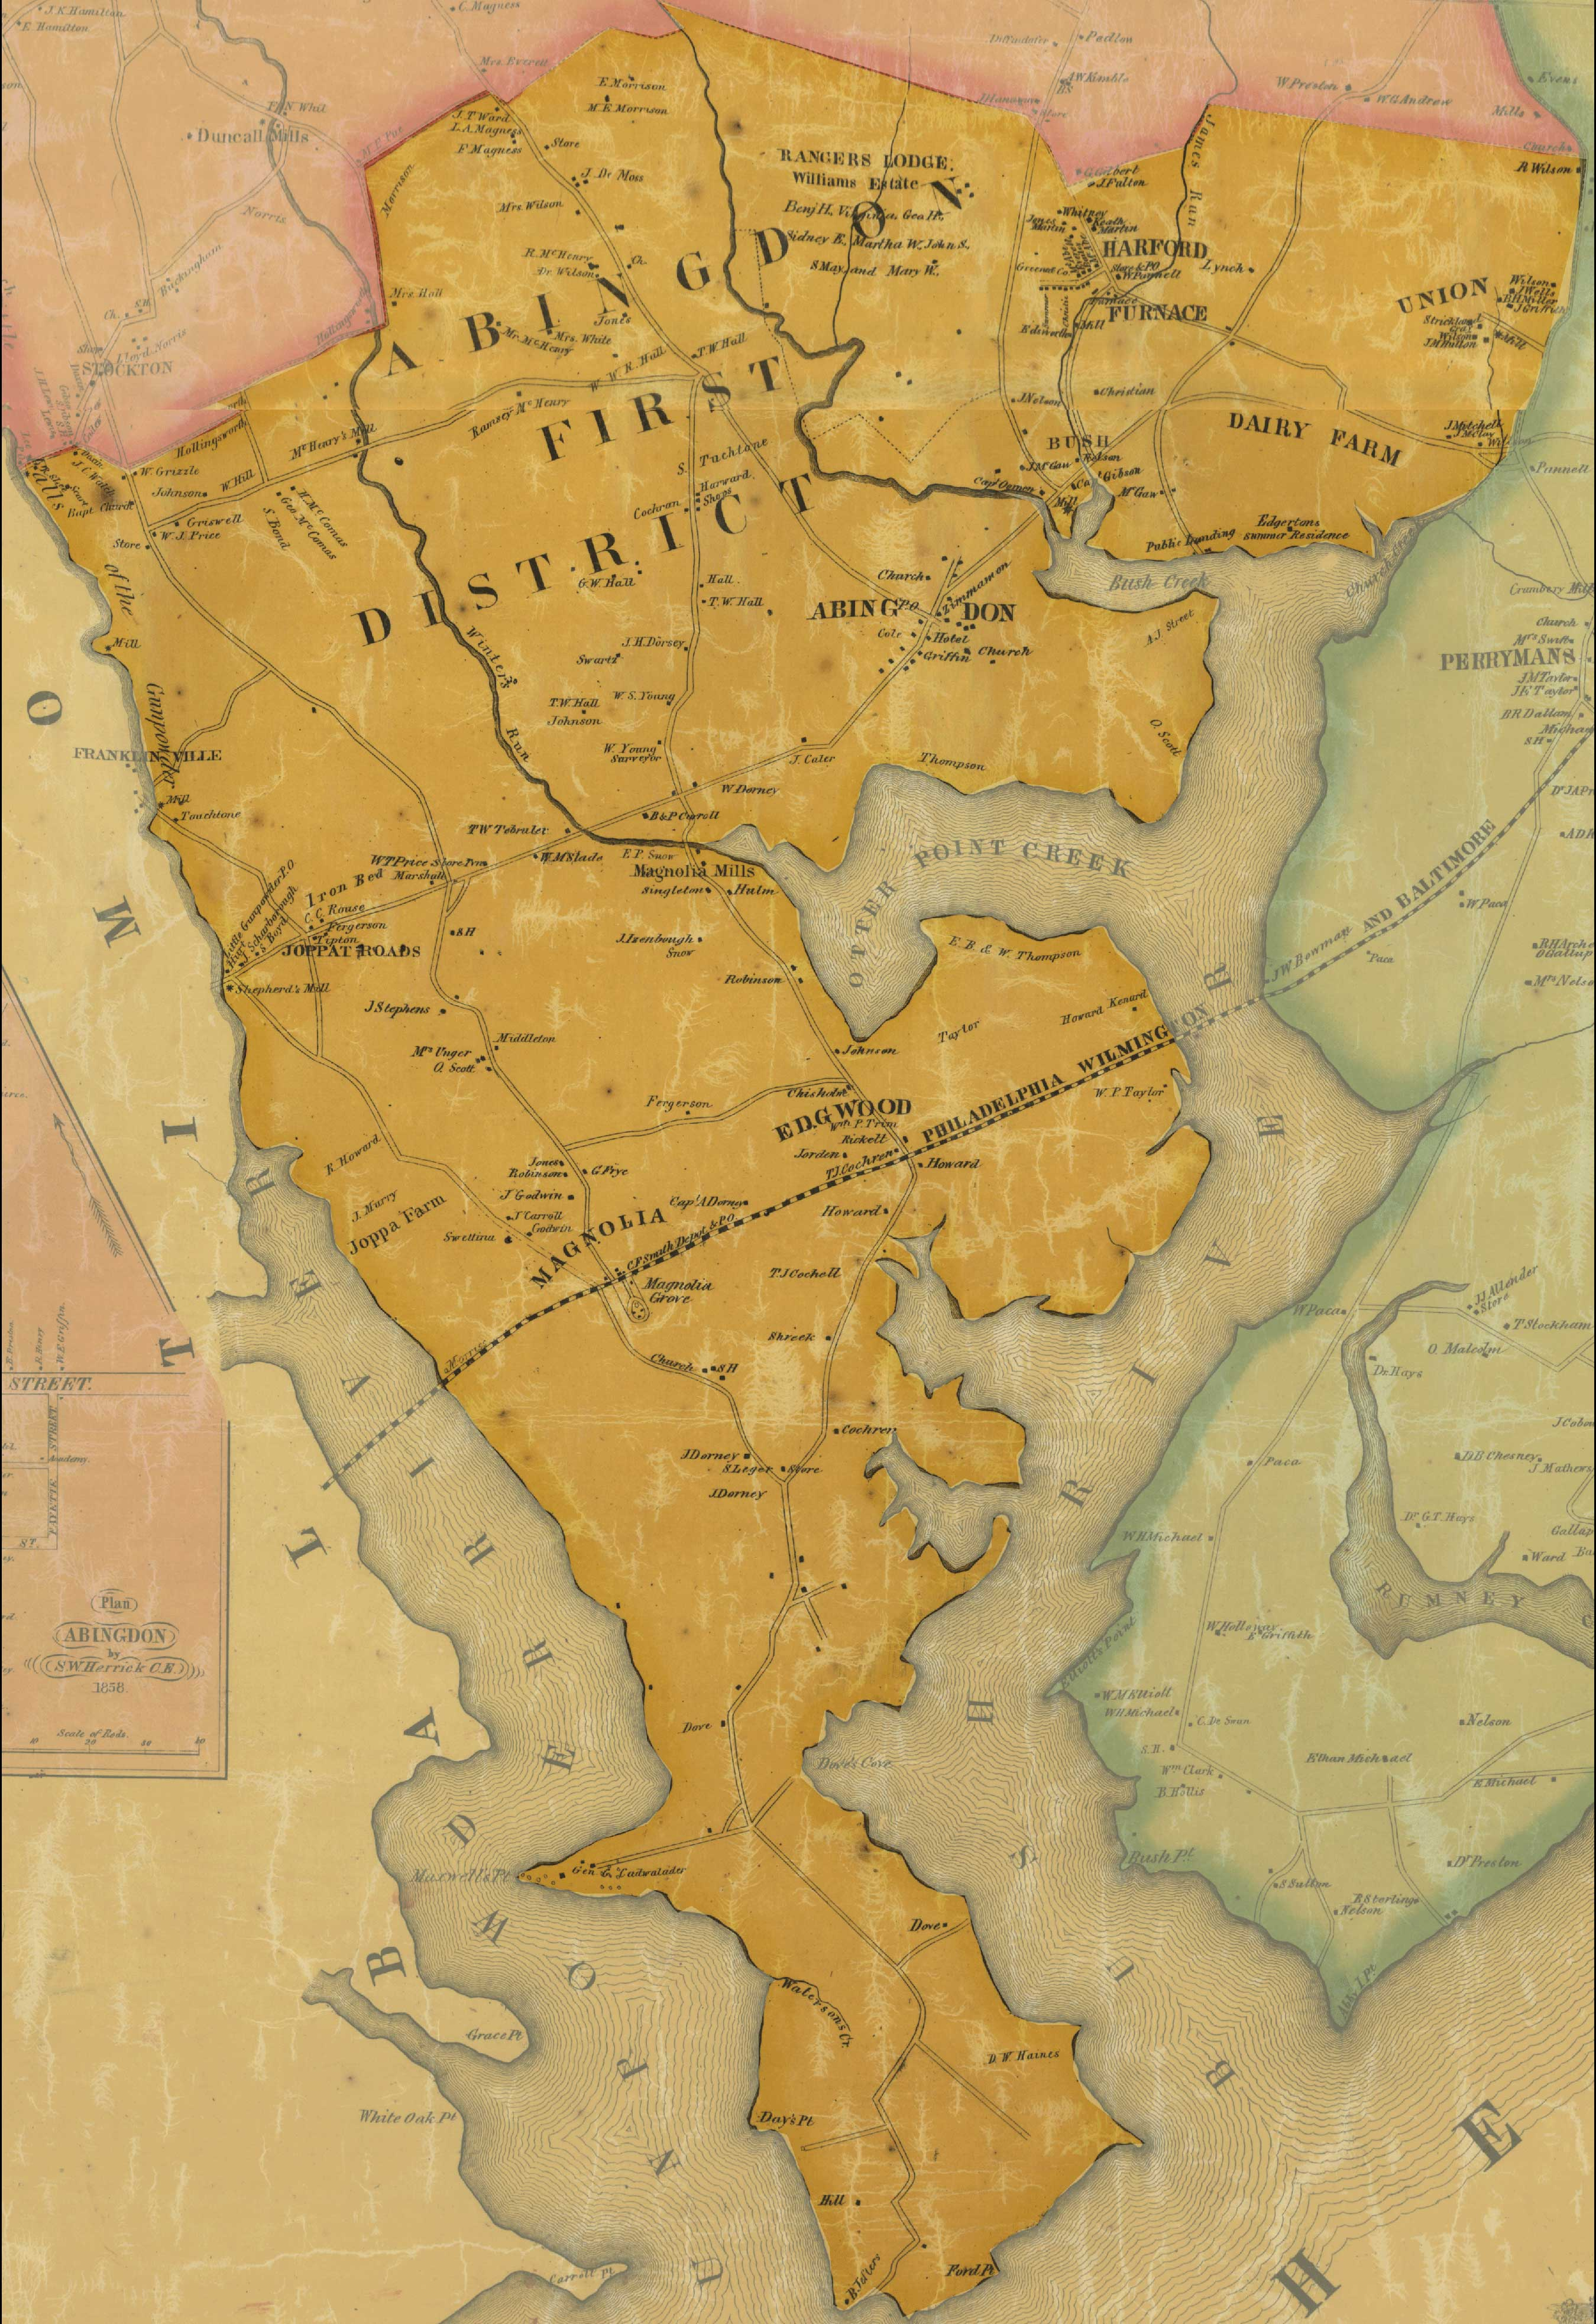 Jennings and Herrick, Map of Harford County, 1858, Library of Congress, MSA SC 1213-1